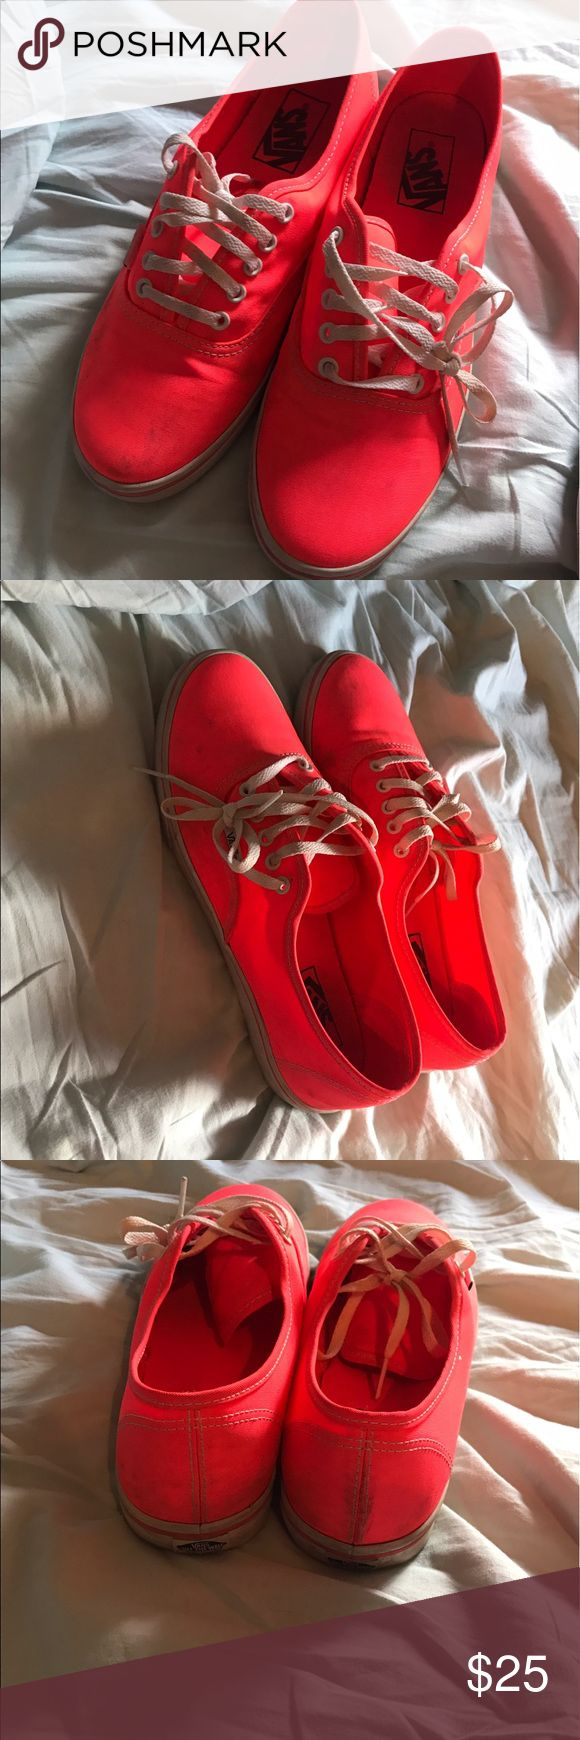 Coral Vans A little dirty but can easily be cleaned! In great condition. Have only been worn a couple of times 8.5 in women's Vans Shoes Flats & Loafers